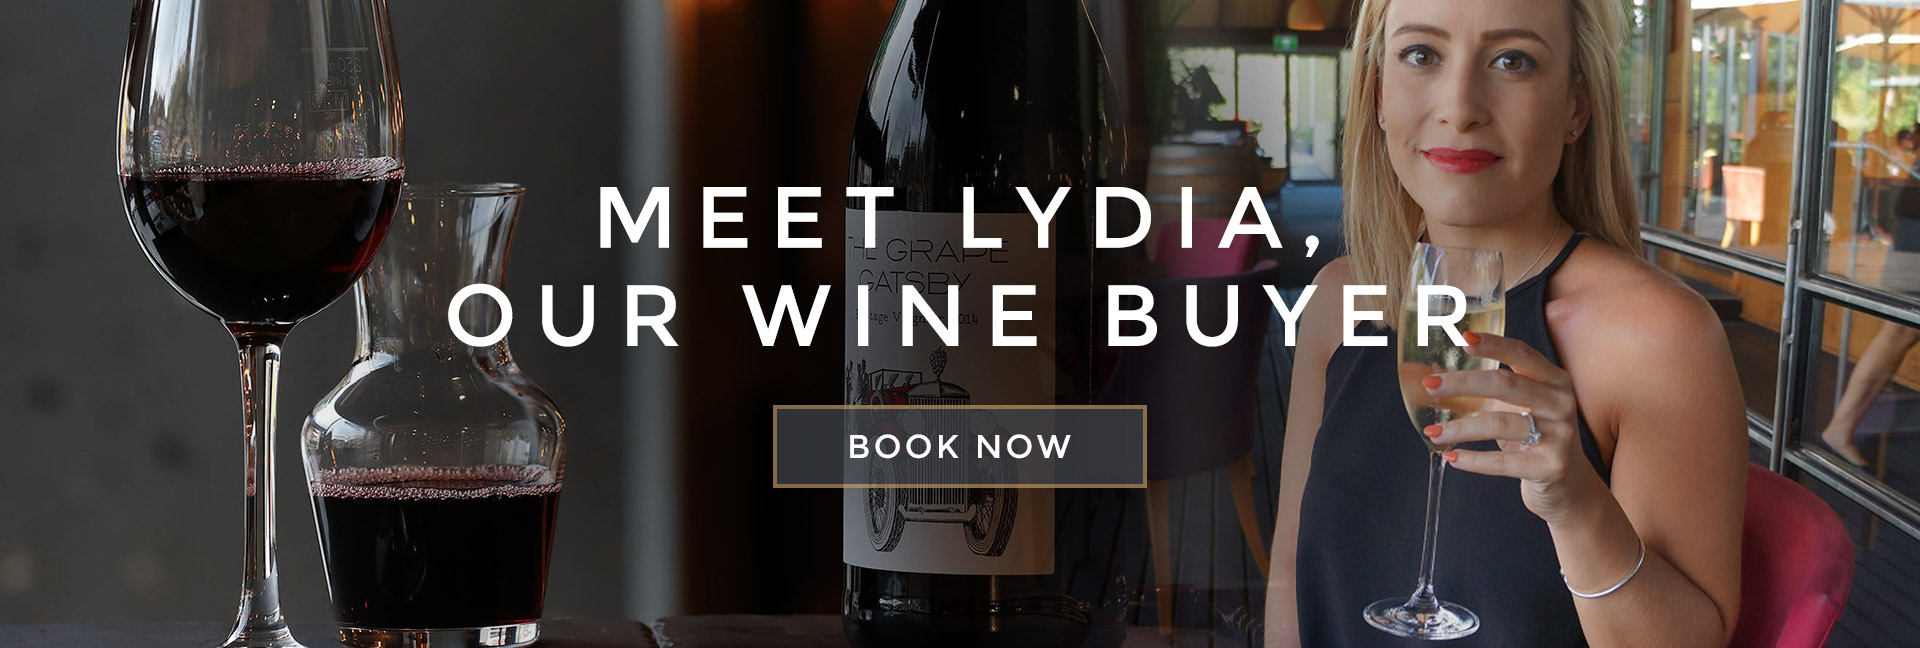 Meet Lydia, our wine buyer at All Bar One West Quay